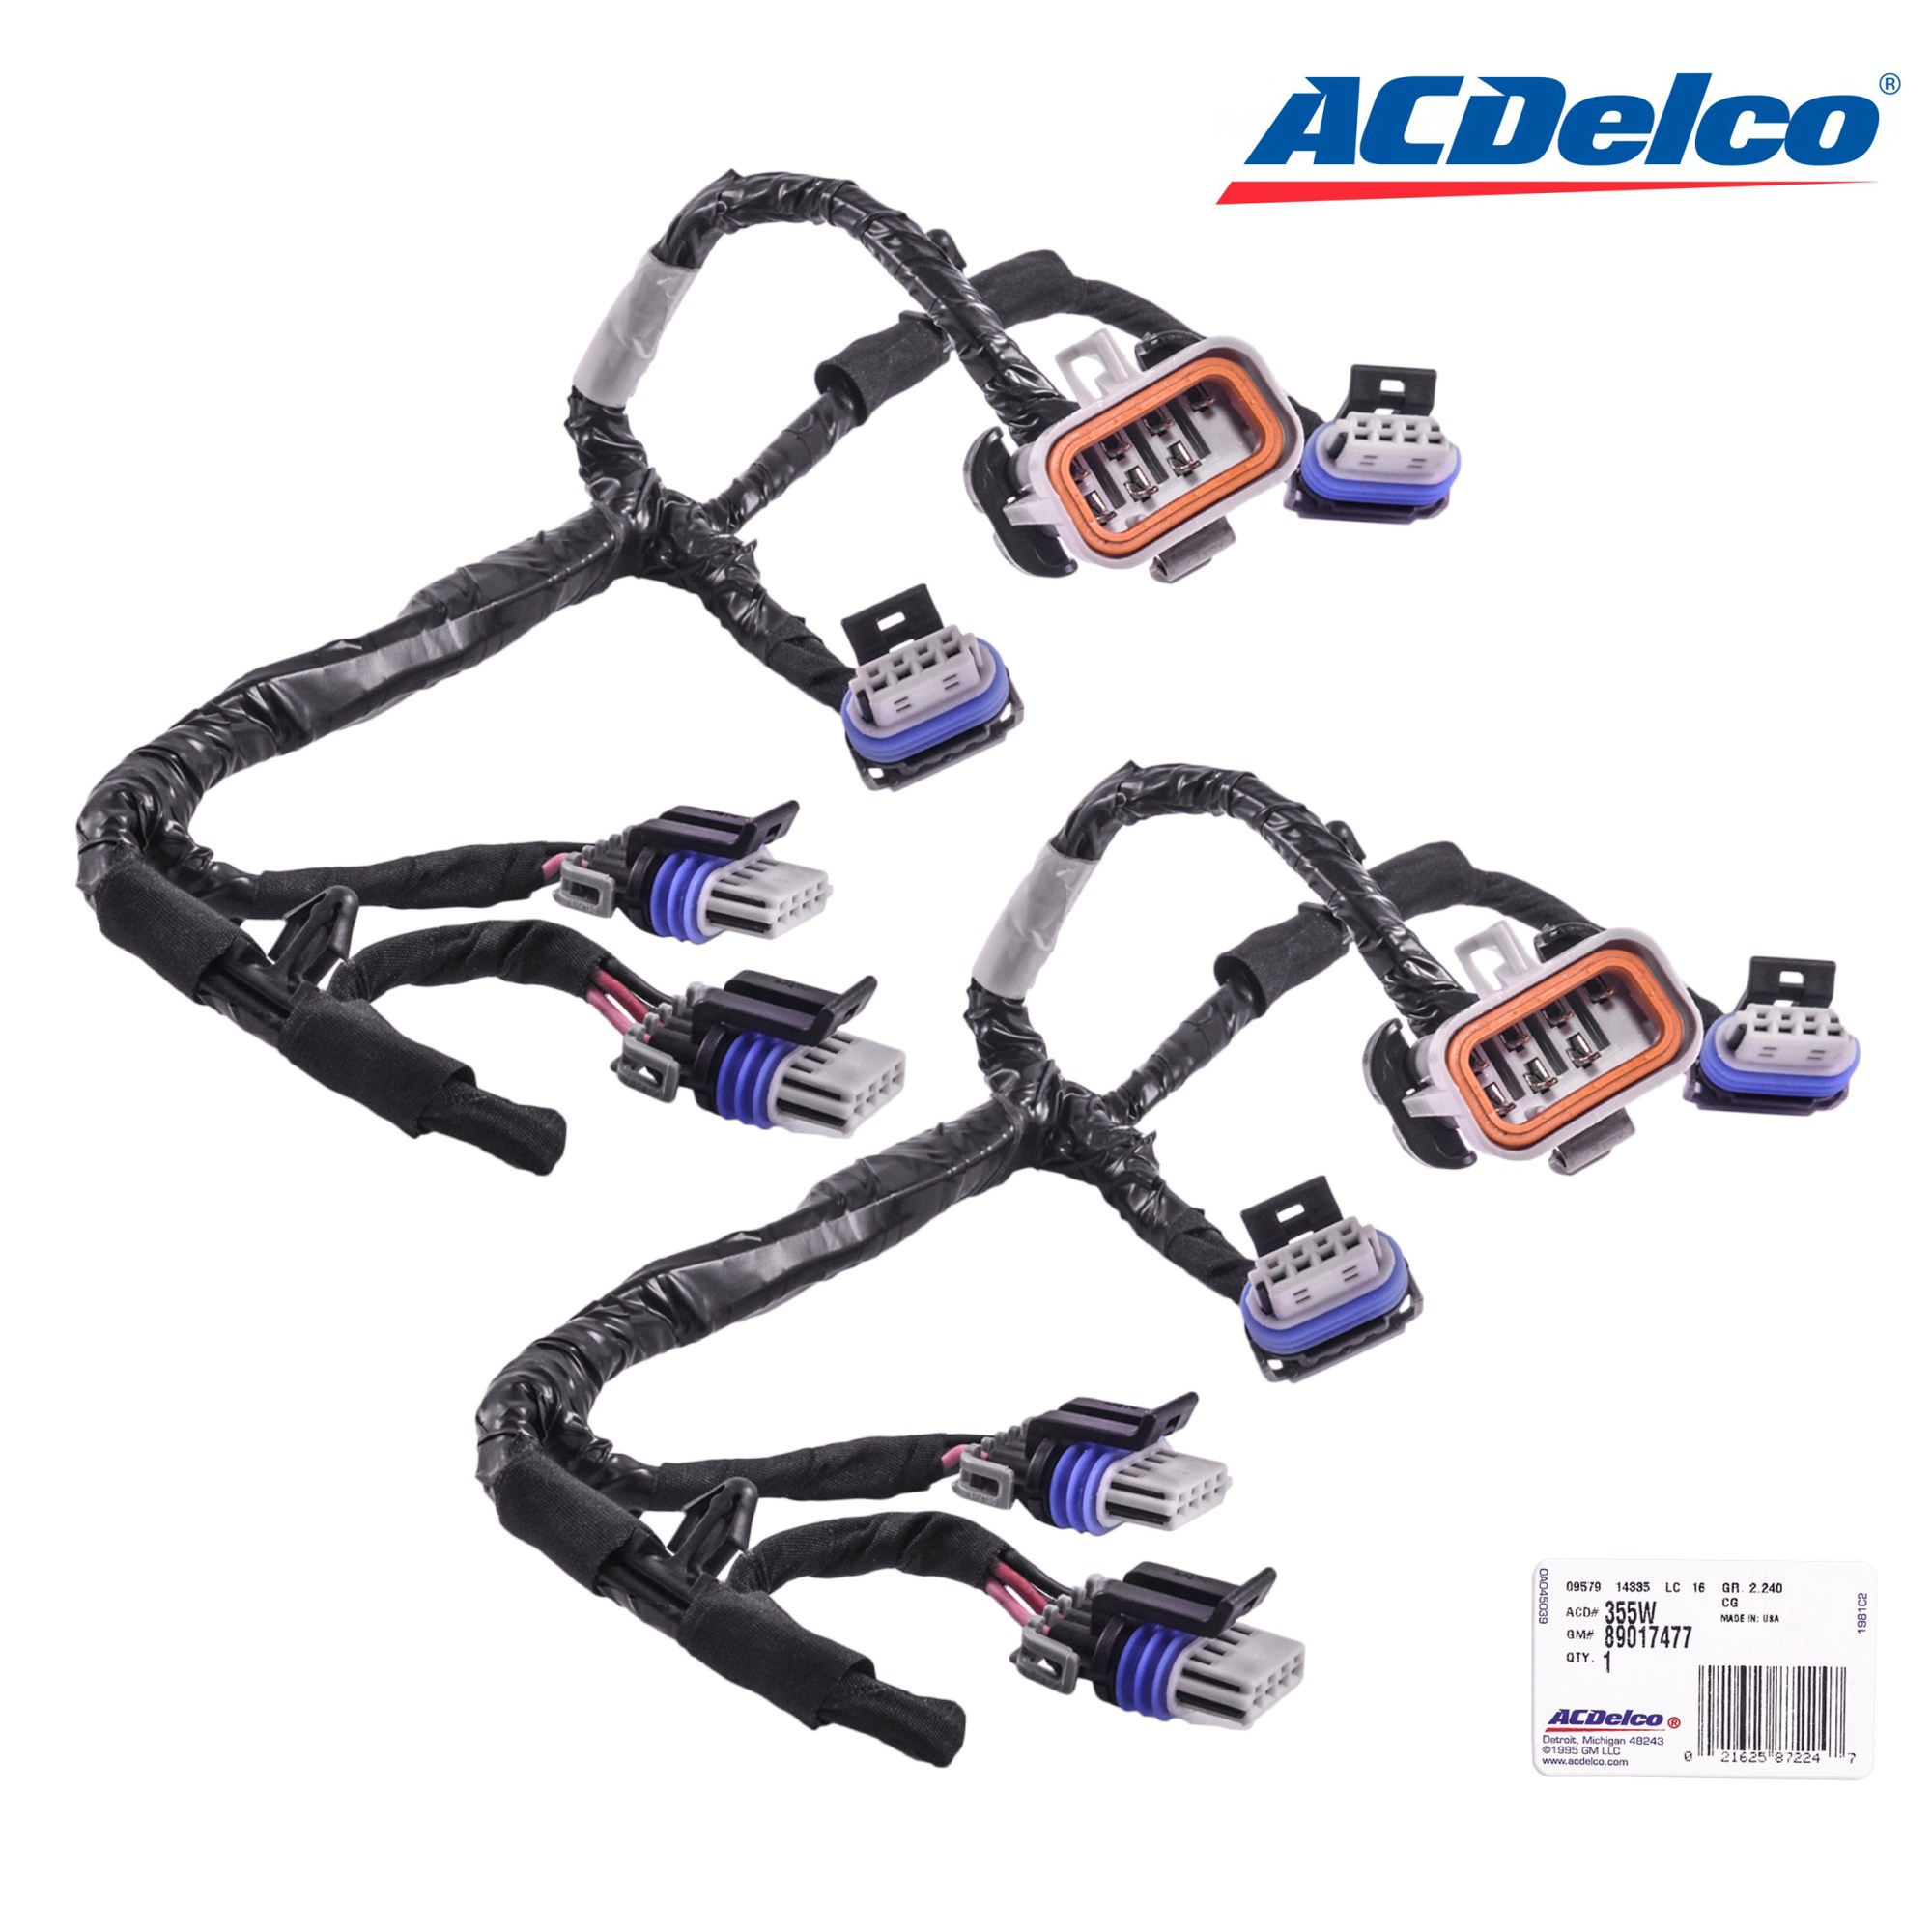 hight resolution of details about set of 2 acdelco ignition coil lead 355w 89017477 wiring harness for d585